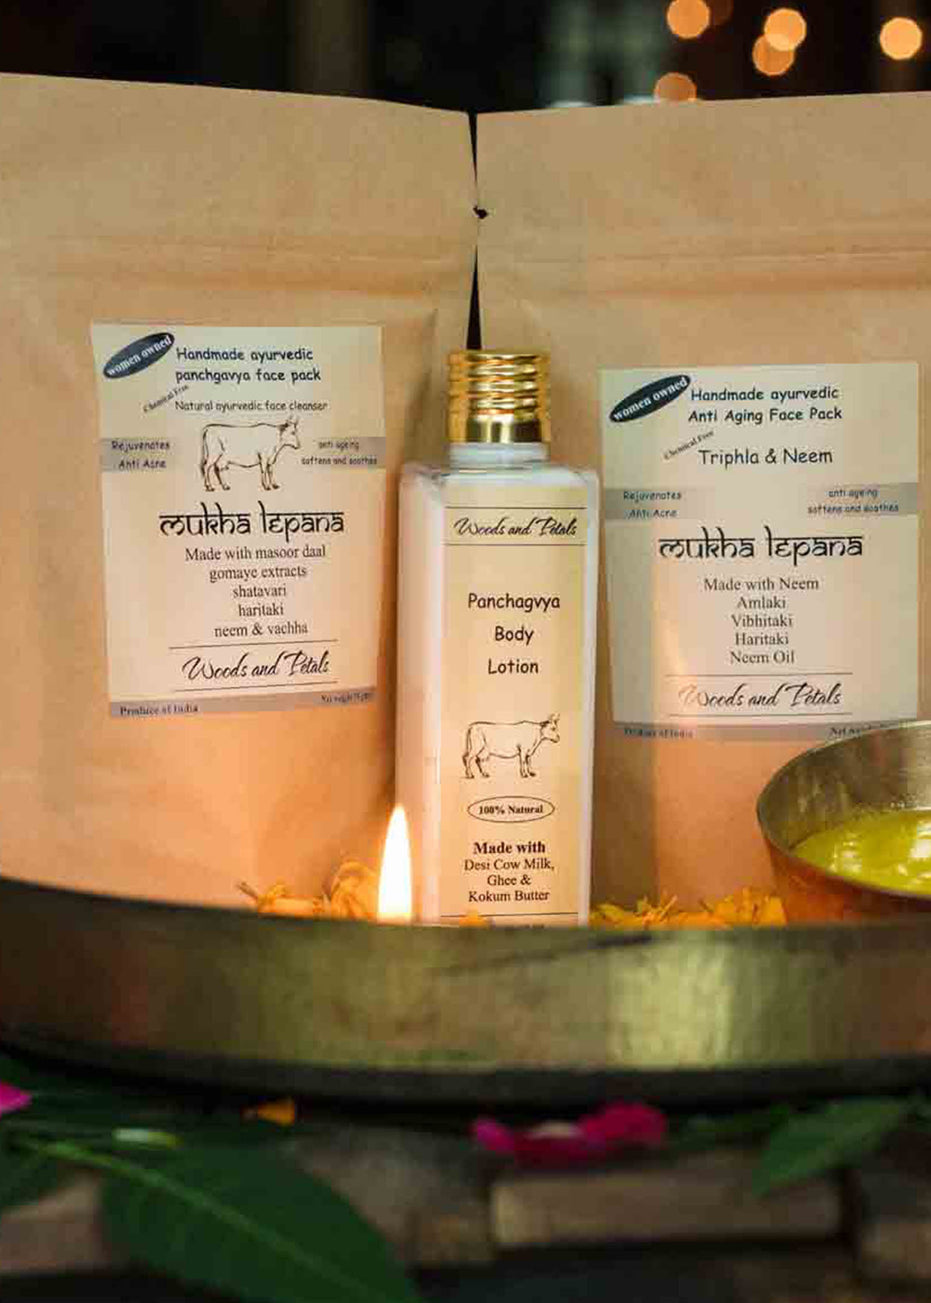 Woods And Petals Skin & Hair Care Ritual (Panchgavya Body Lotion + Panchgavya Face Pack + Triphla Neem Face And Hair Mask), Beauty & Skin Care, Woods And Petals, ihaat, [made_in_india], [handmade] - ihaat